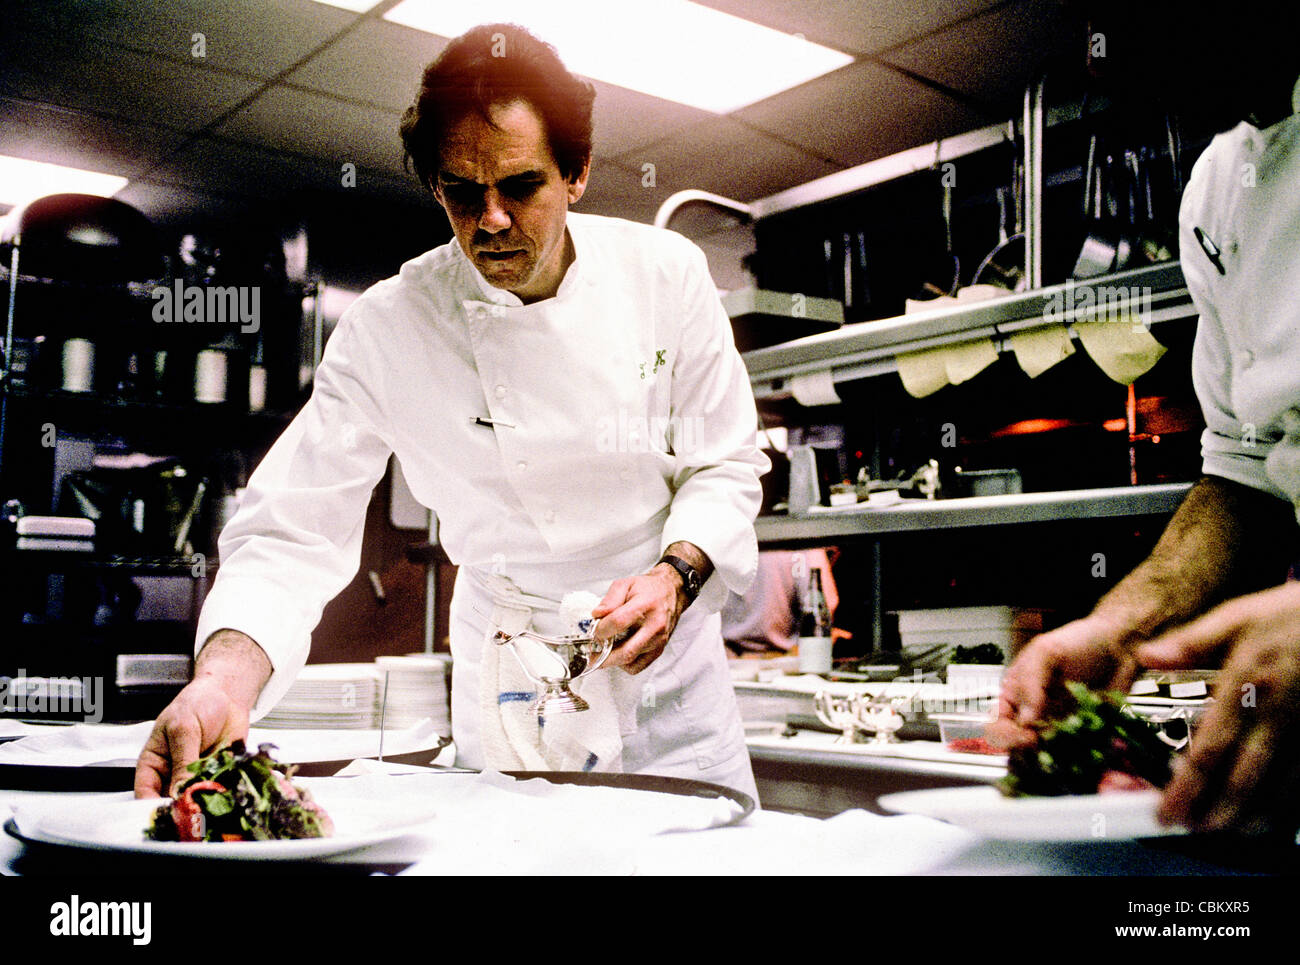 Amerikanische Küche Chefkoch The French Laundry Stockfotos And The French Laundry Bilder